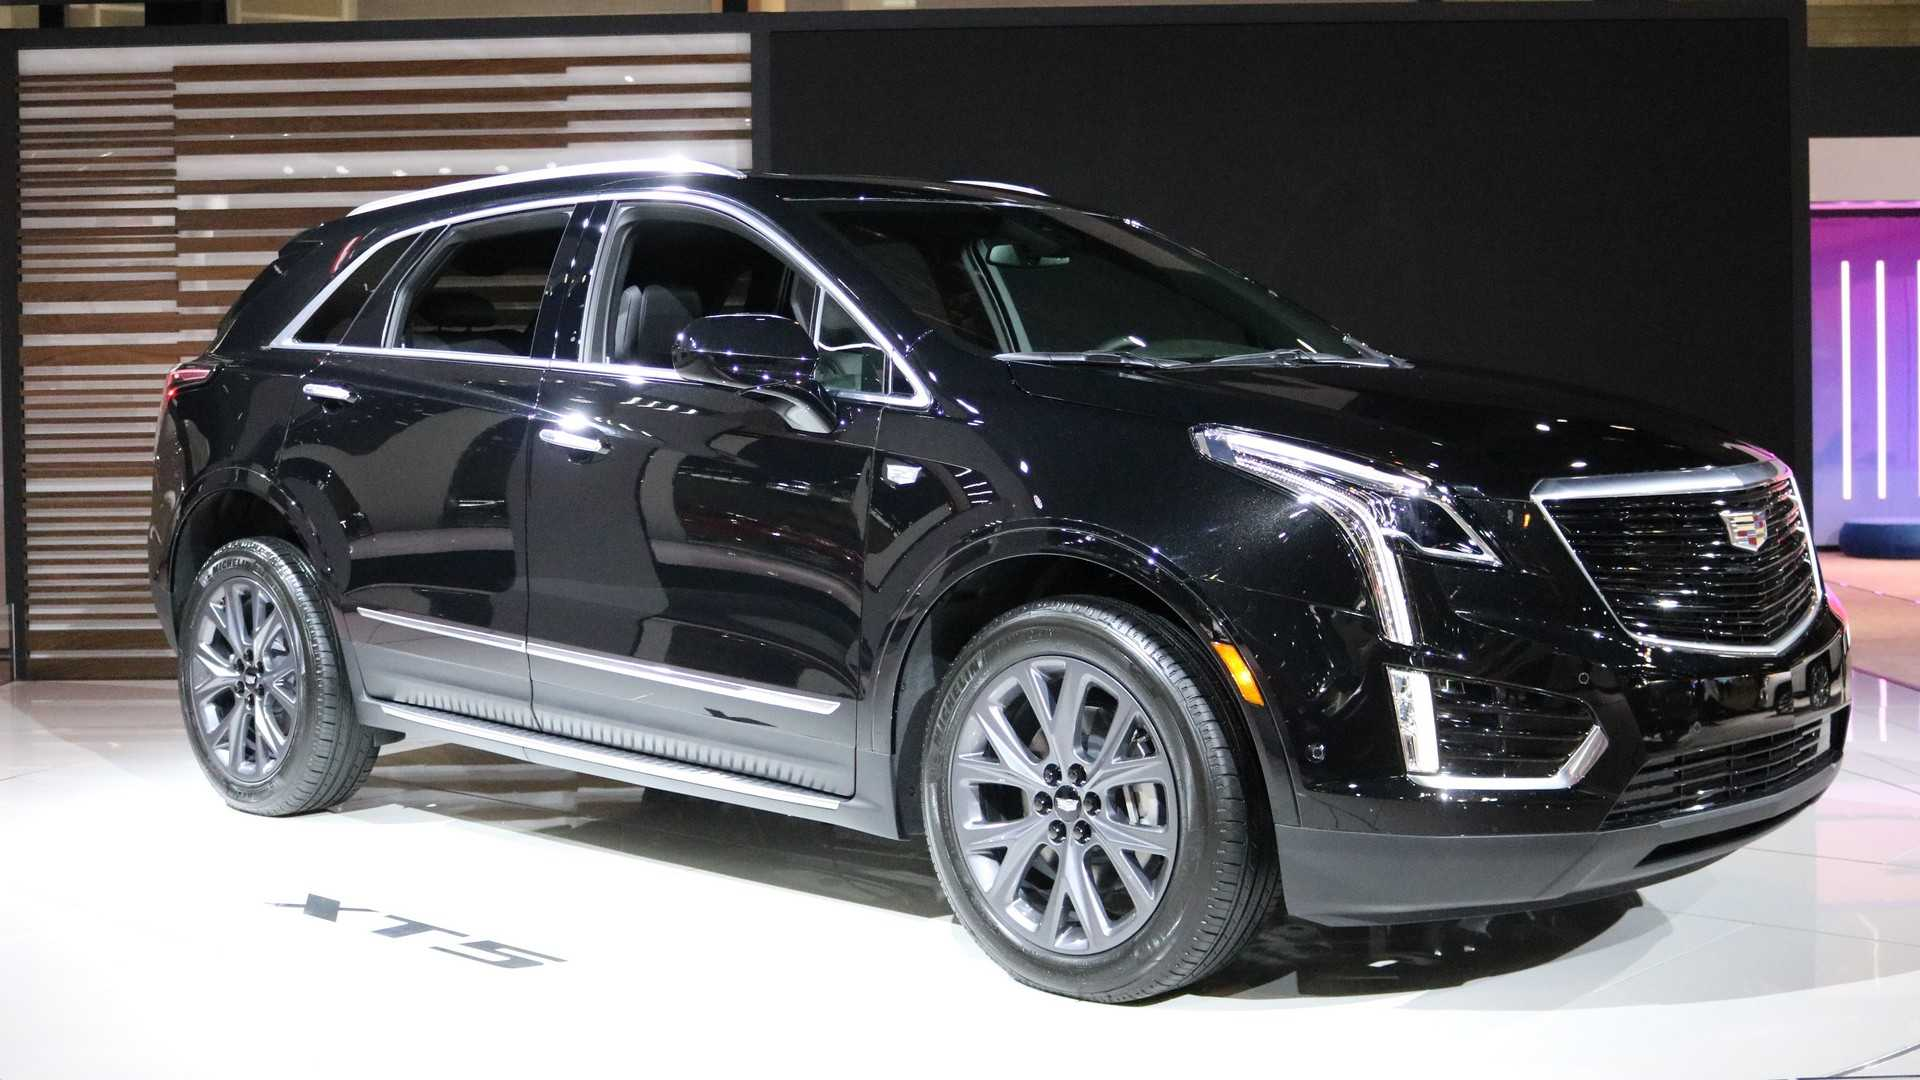 Cadillac Xt5 Sport Package Debuts Darker Design In Chicago